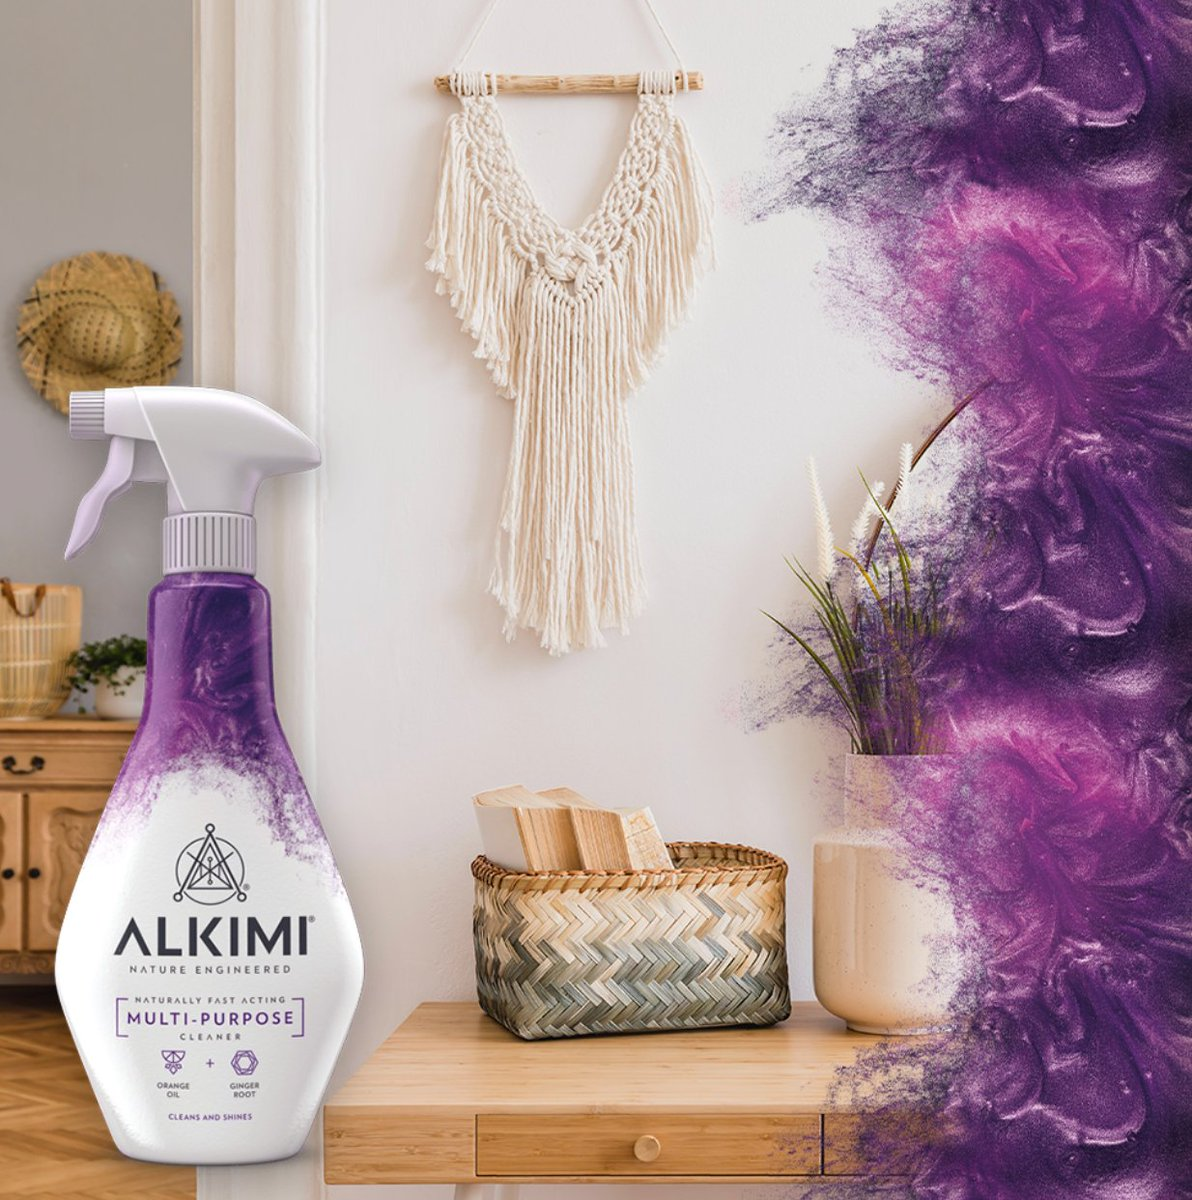 With naturally fast-acting ingredients, the ALKIMI Multi-Purpose Cleaner makes cleaning throughout your home effortless. #ForceOfNature https://t.co/I2PTUlugdz